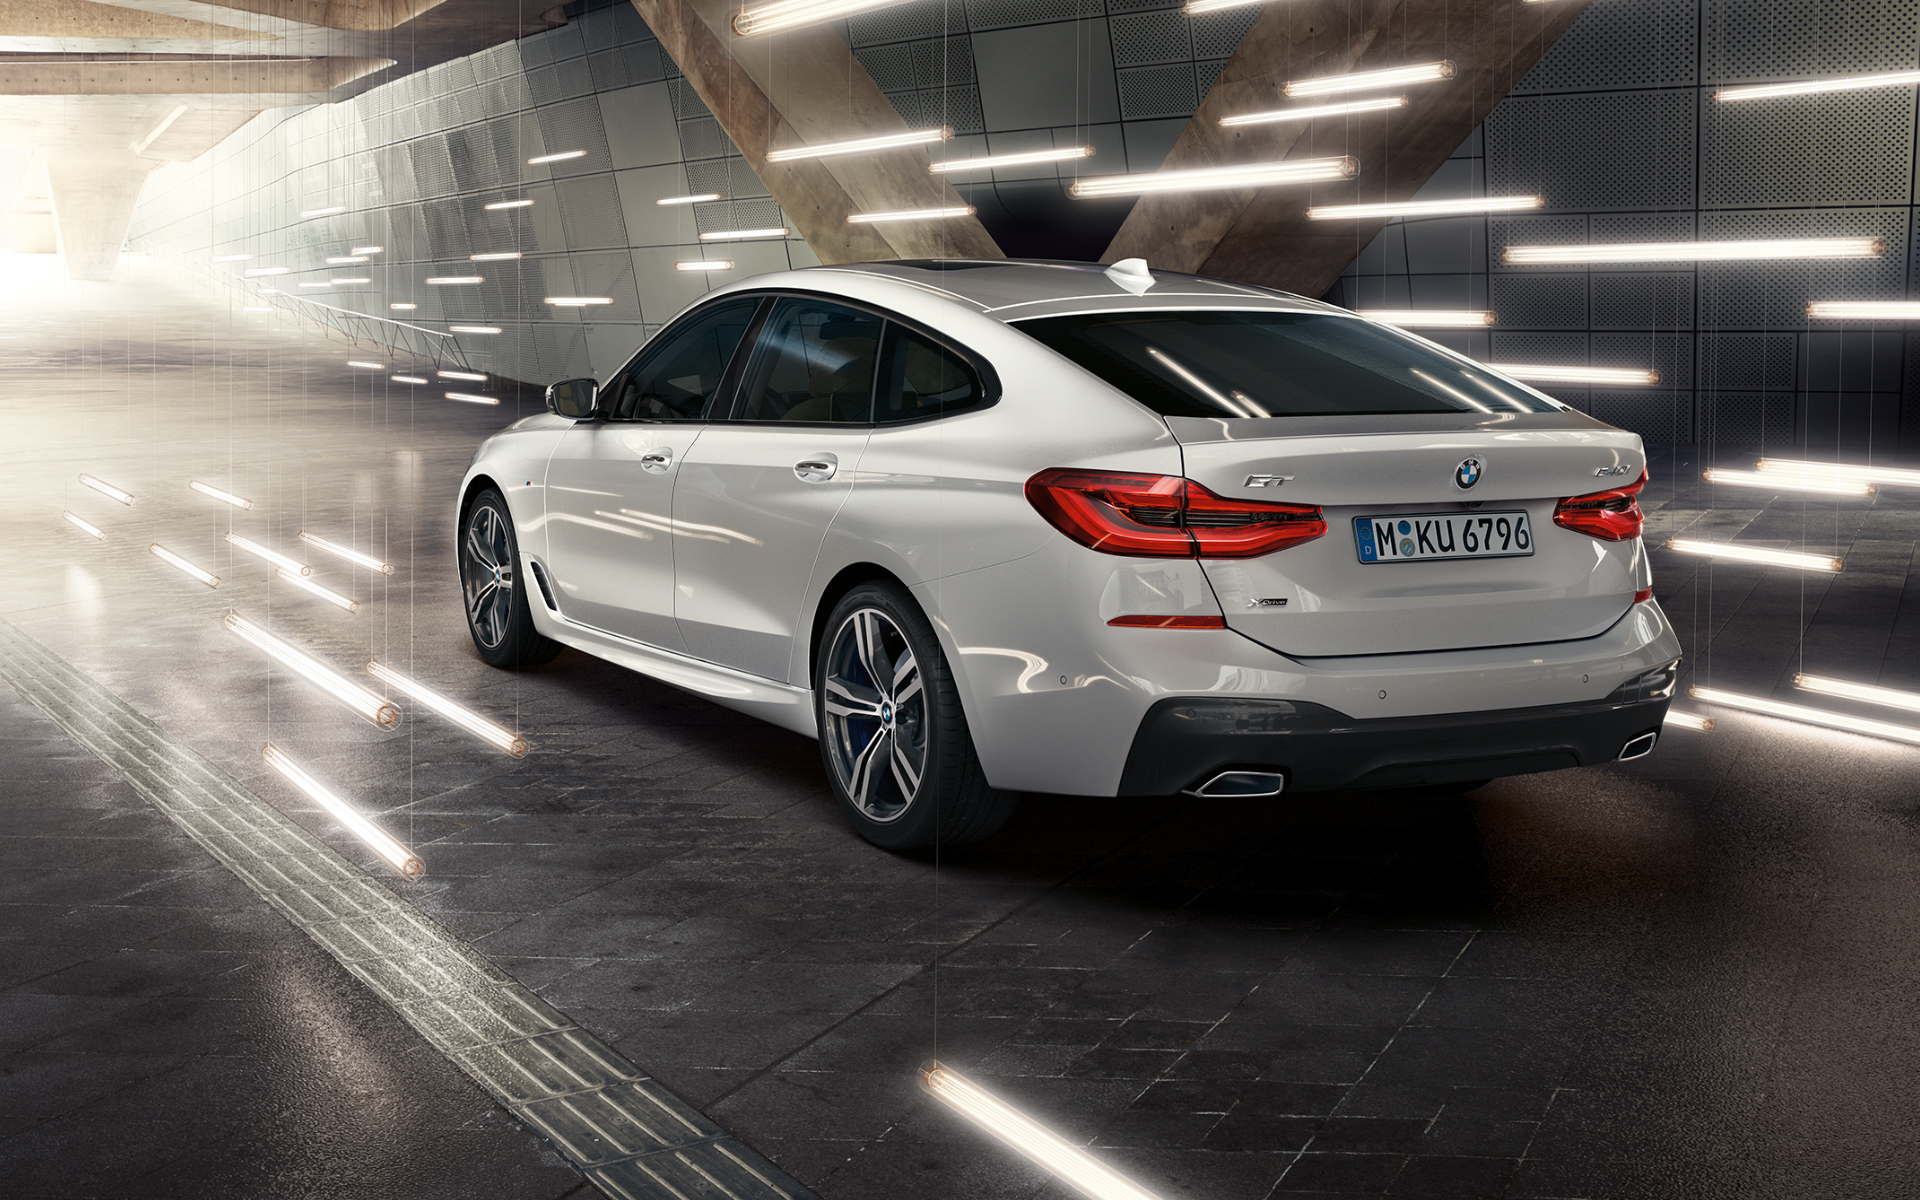 Download wallpapers of the BMW 6 Series Gran Turismo 1920x1200